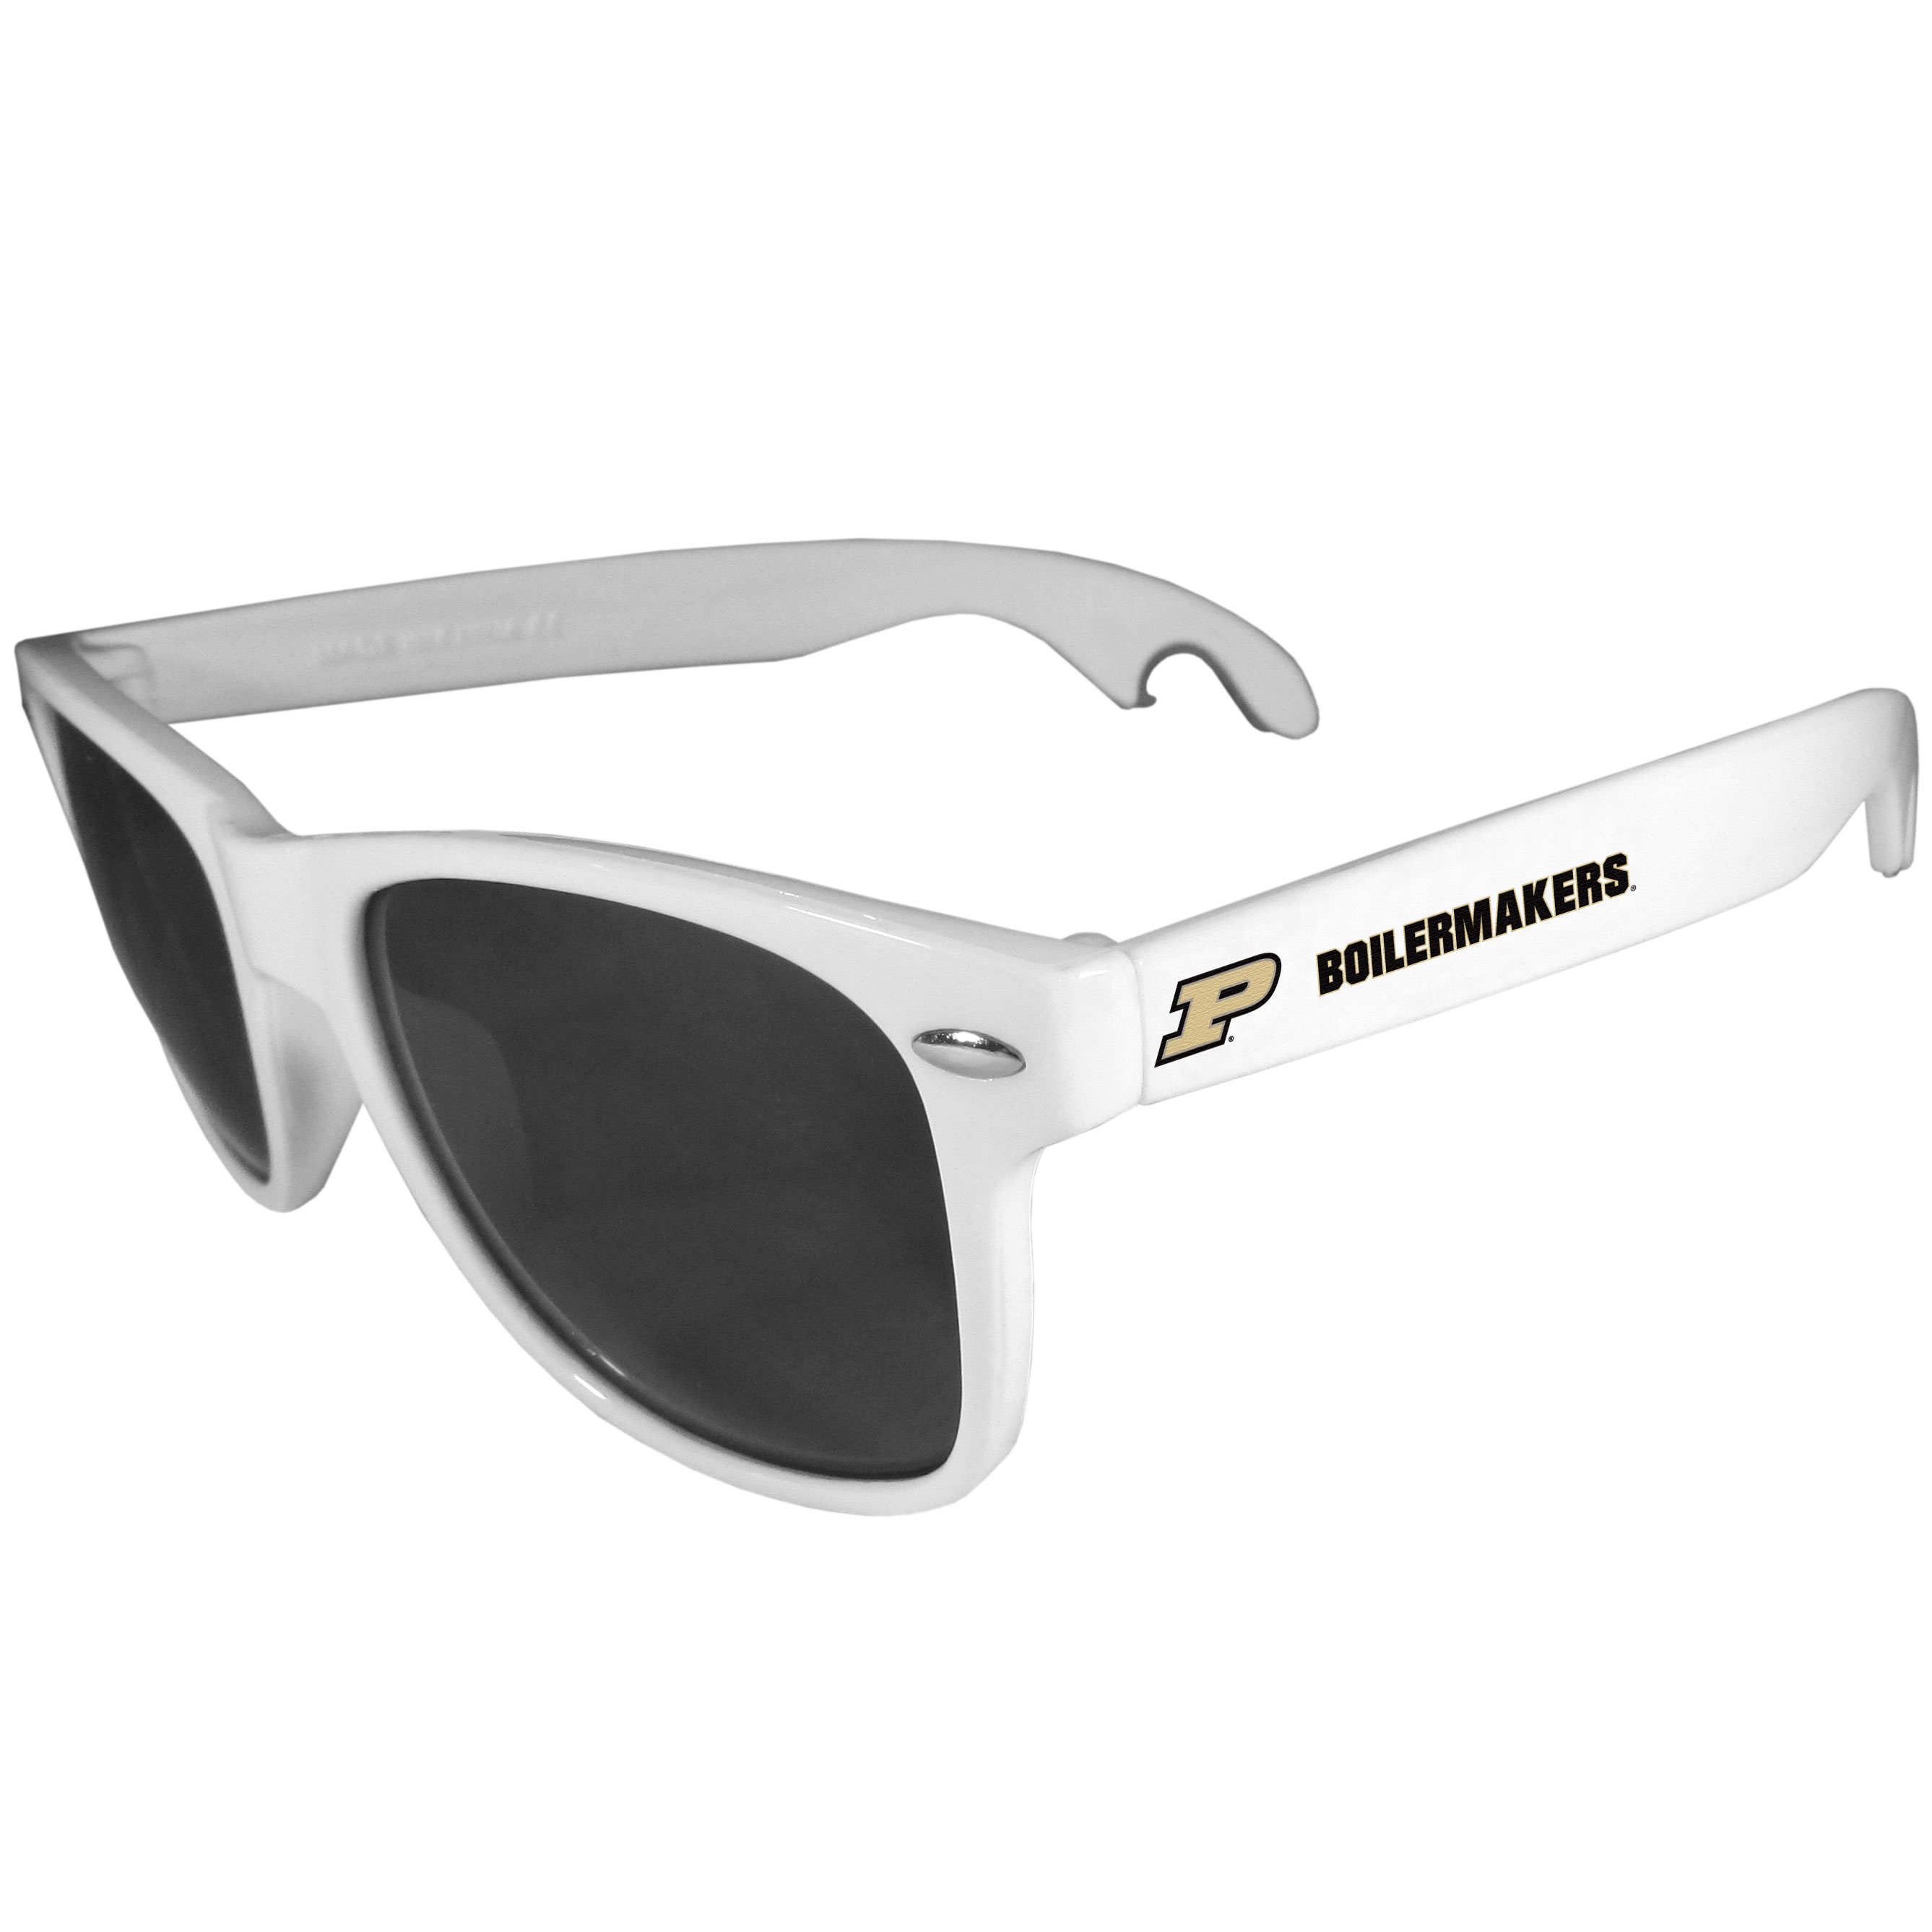 Purdue Boilermakers Beachfarer Bottle Opener Sunglasses, White - Seriously, these sunglasses open bottles! Keep the party going with these amazing Purdue Boilermakers bottle opener sunglasses. The stylish retro frames feature team designs on the arms and functional bottle openers on the end of the arms. Whether you are at the beach or having a backyard BBQ on game day, these shades will keep your eyes protected with 100% UVA/UVB protection and keep you hydrated with the handy bottle opener arms.